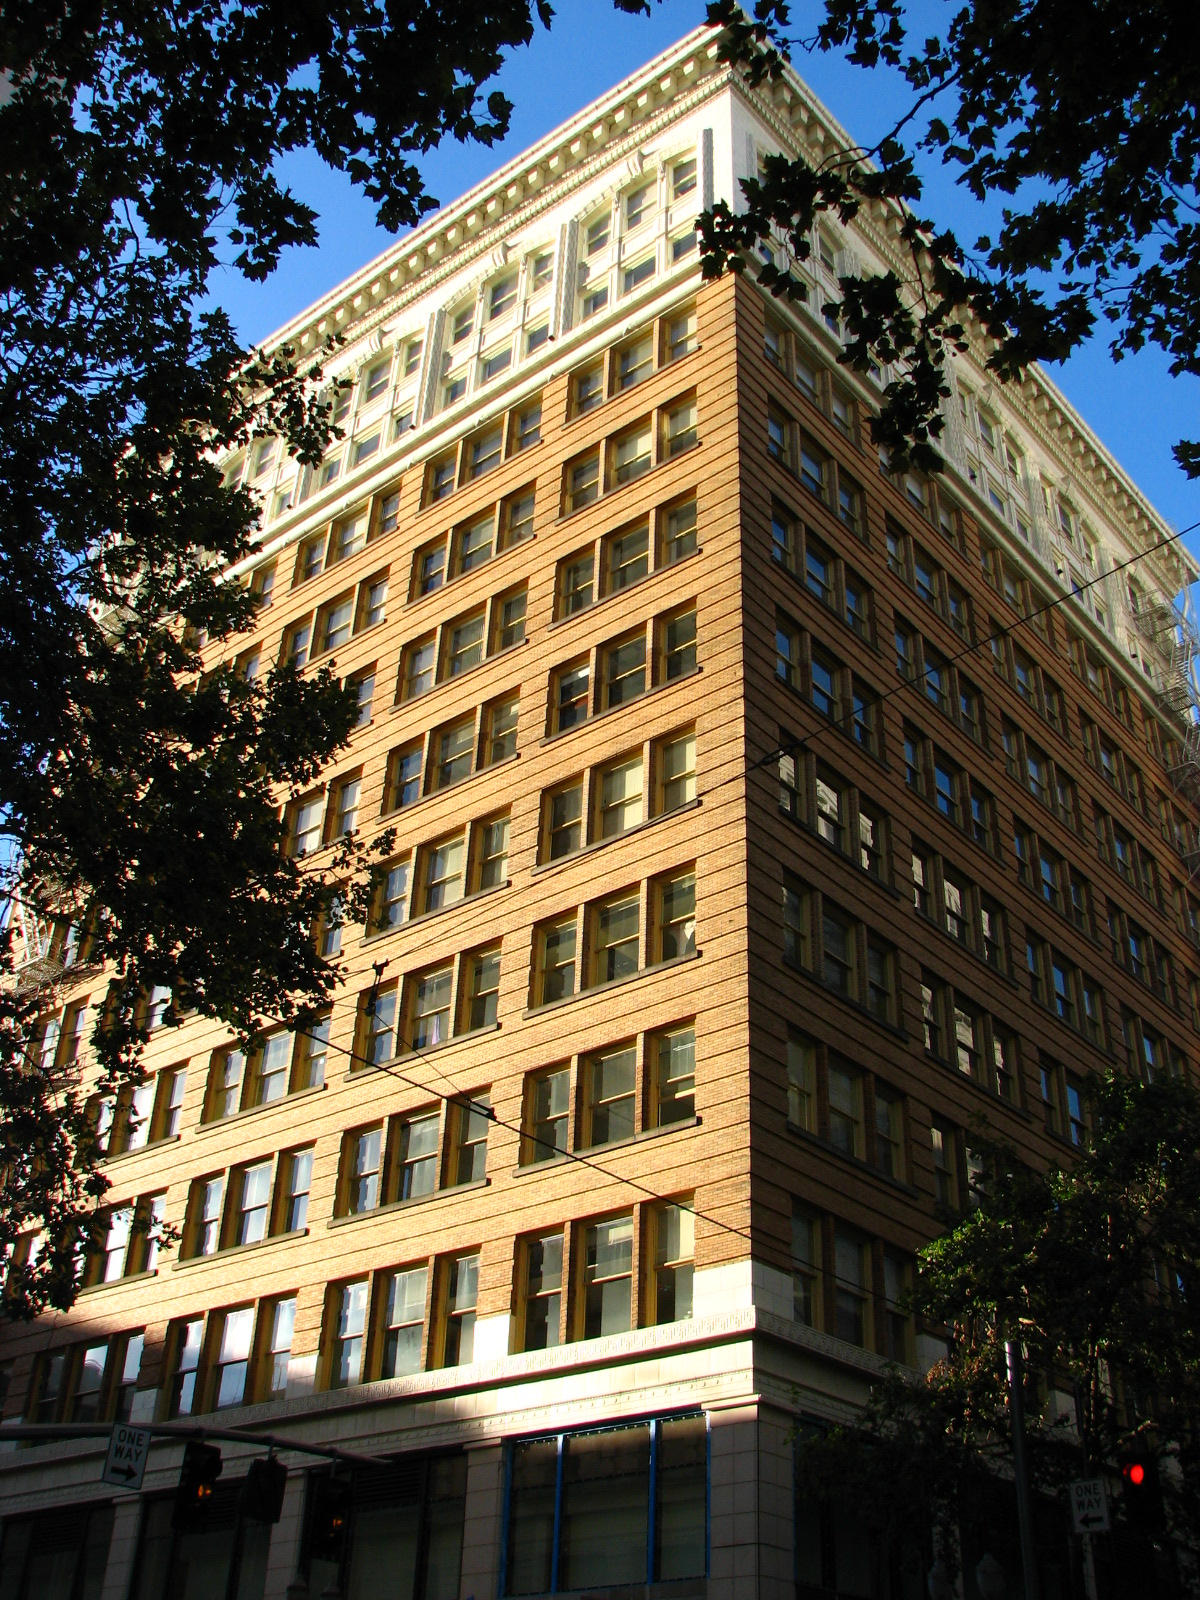 The Falling Building was constructed in 1907 and expanded six years later.